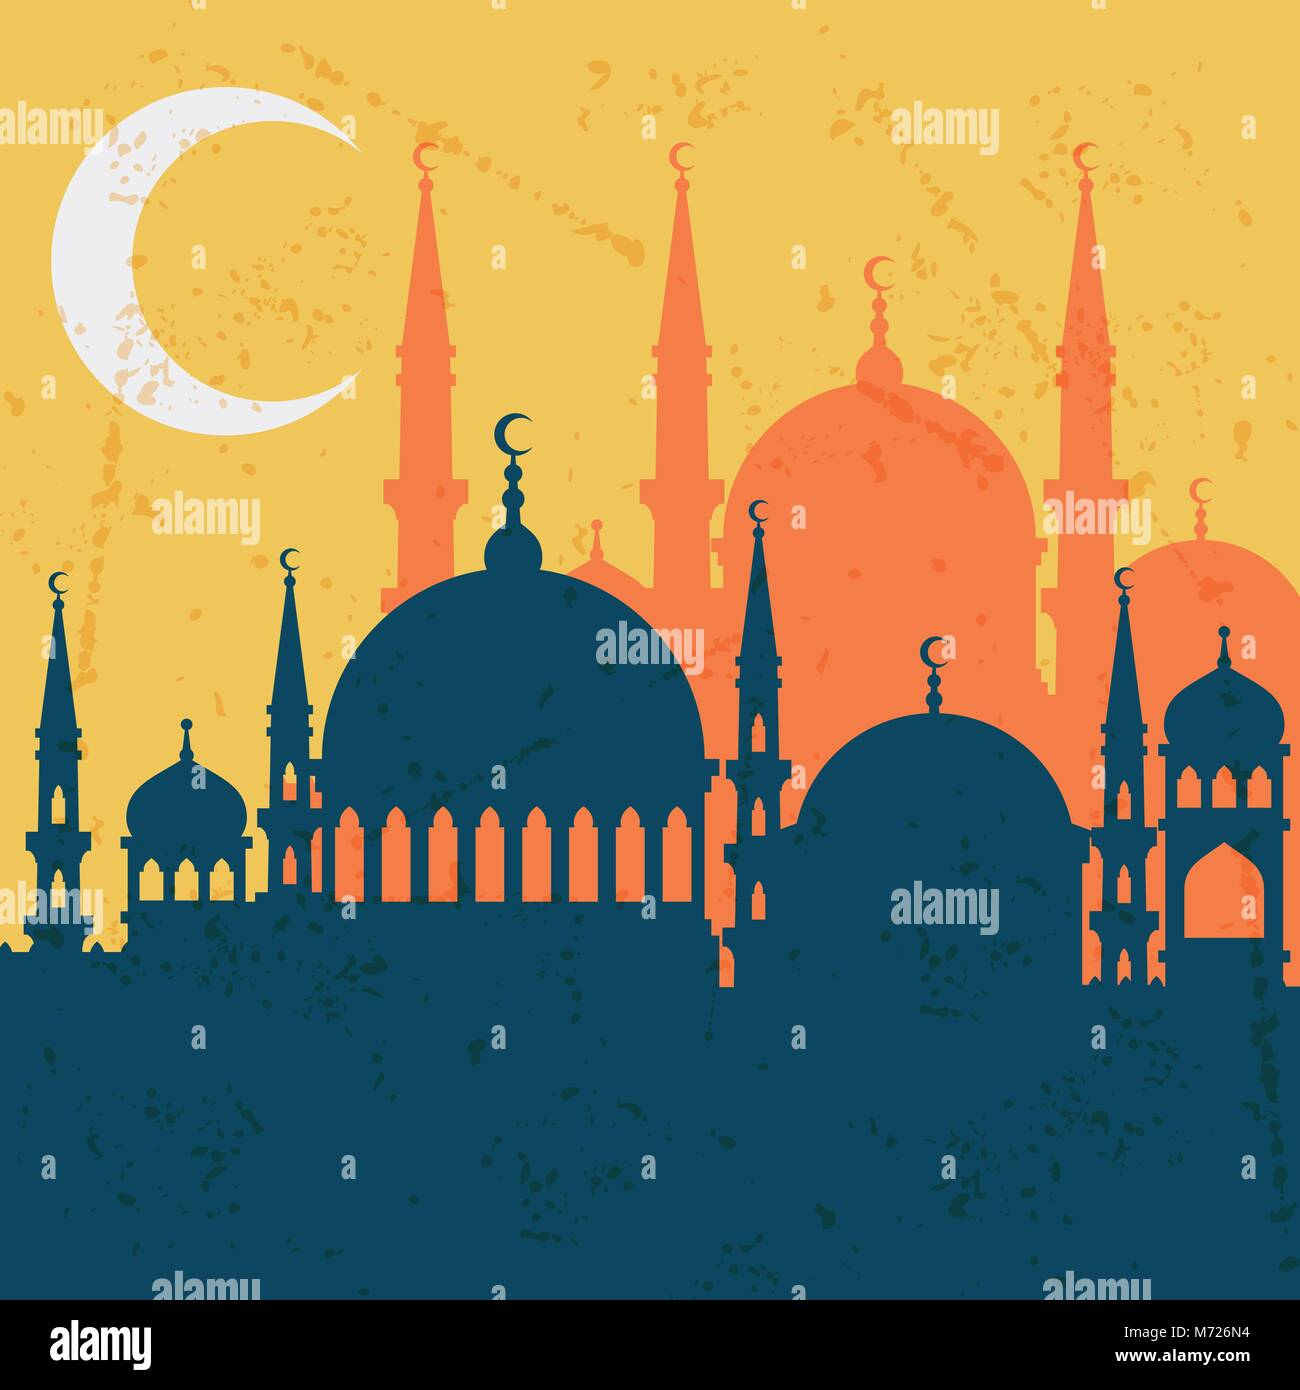 islam poster stock photos  u0026 islam poster stock images